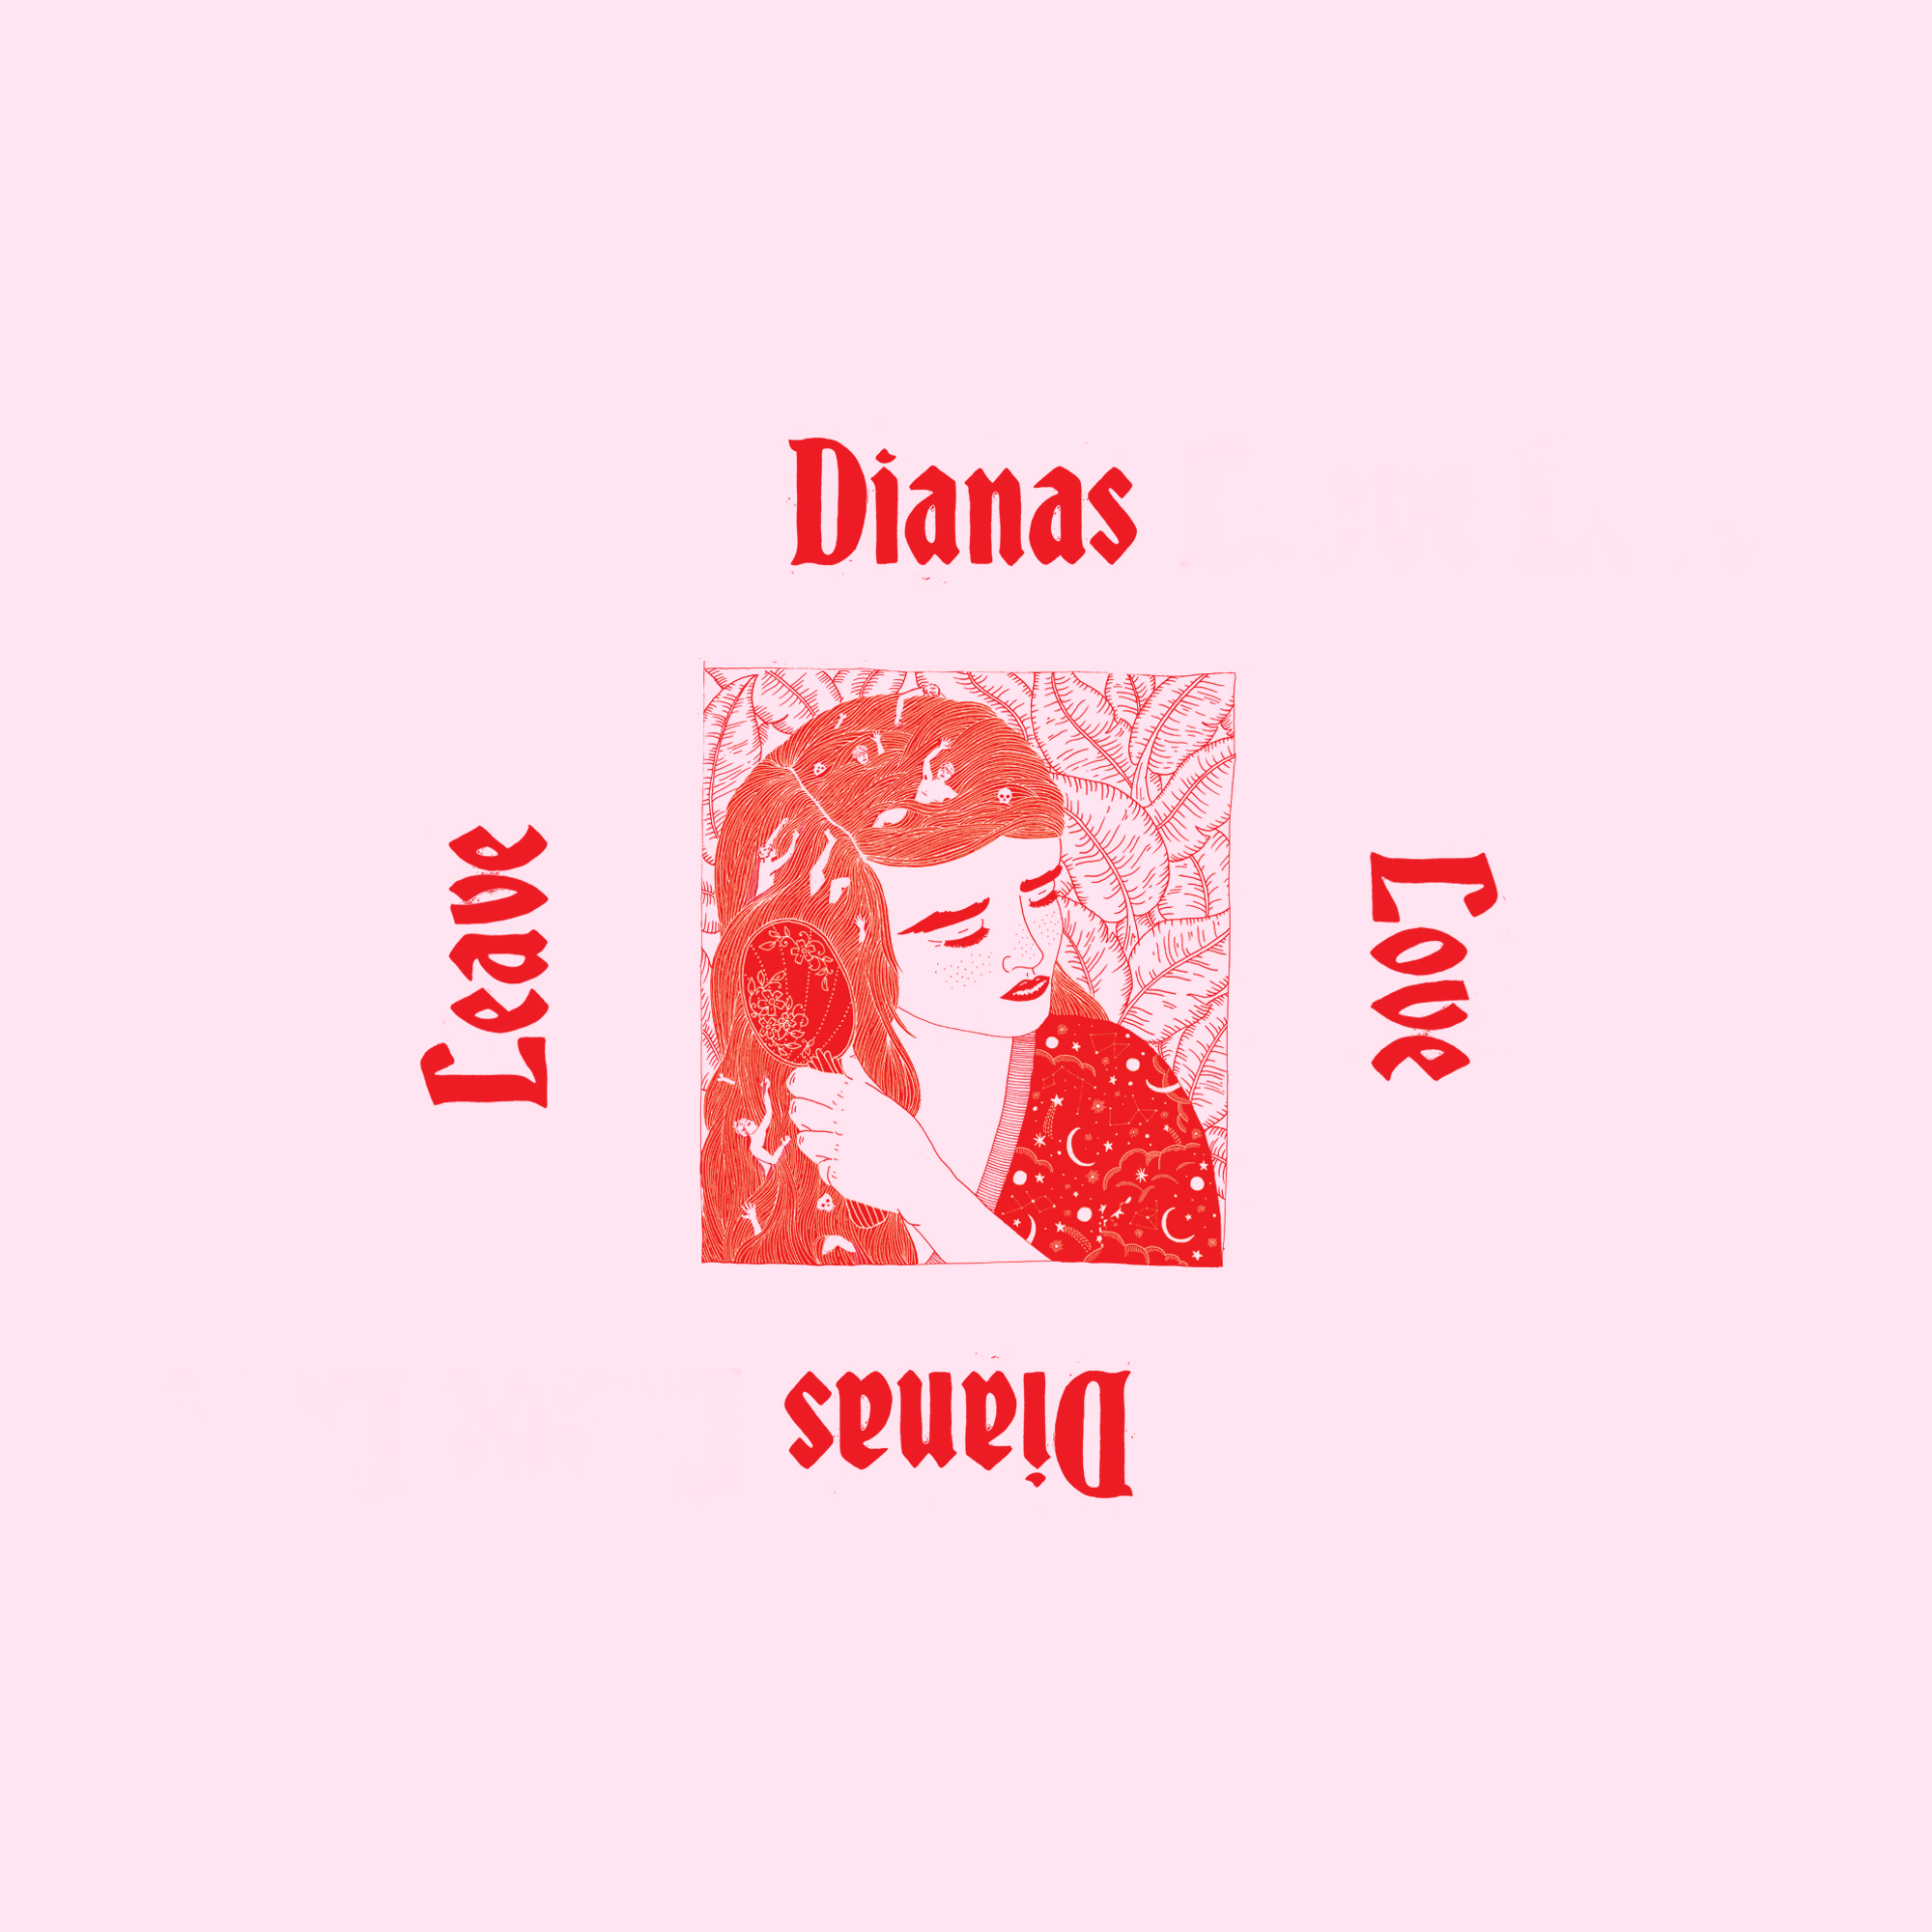 Dianas - Leave Love